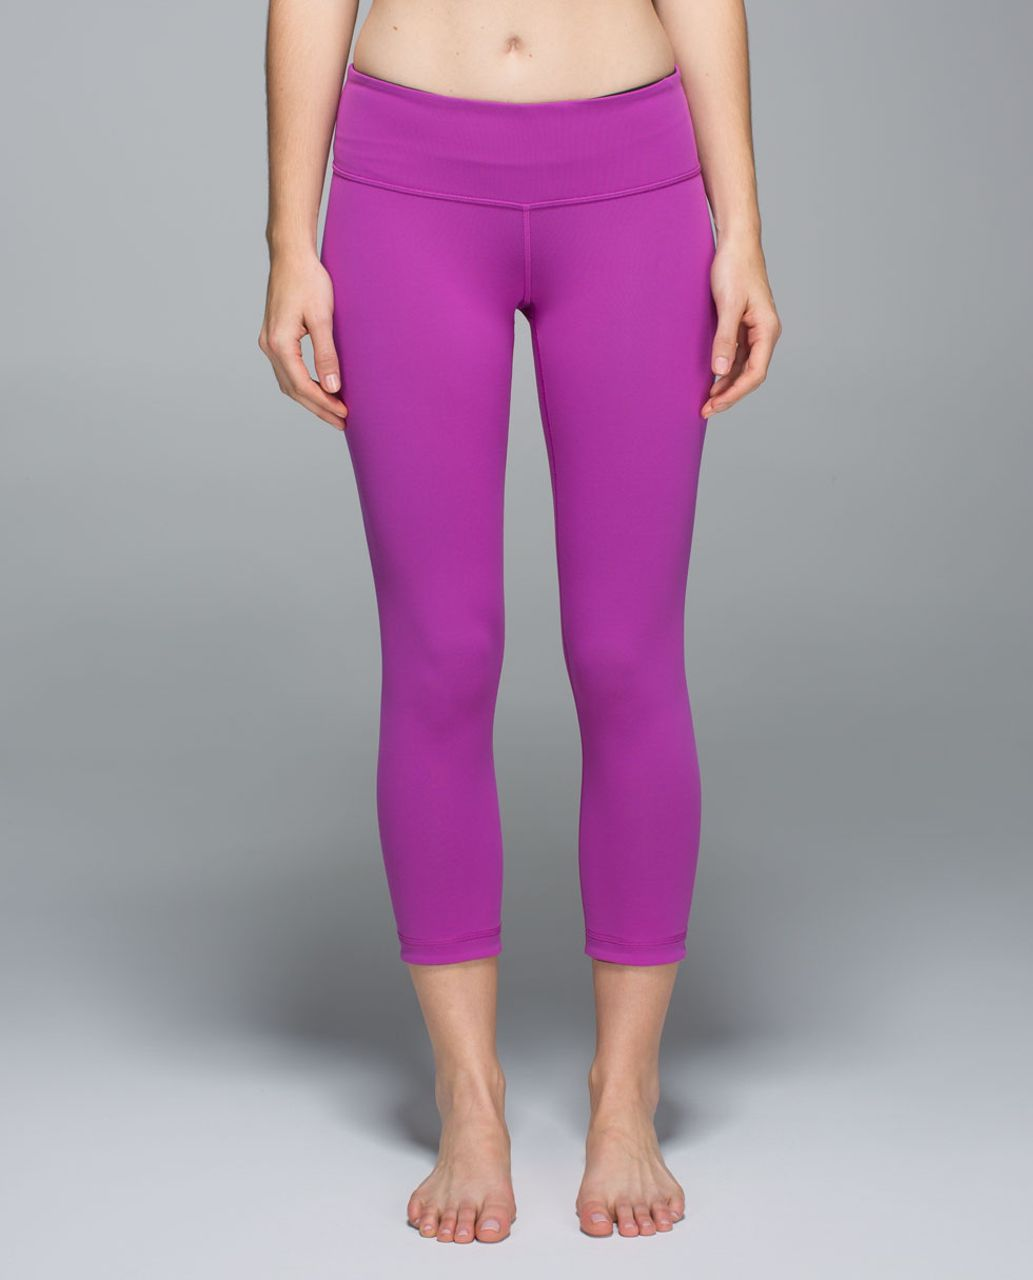 Lululemon Wunder Under Crop II (Reversible) - Black /  Ultra Violet